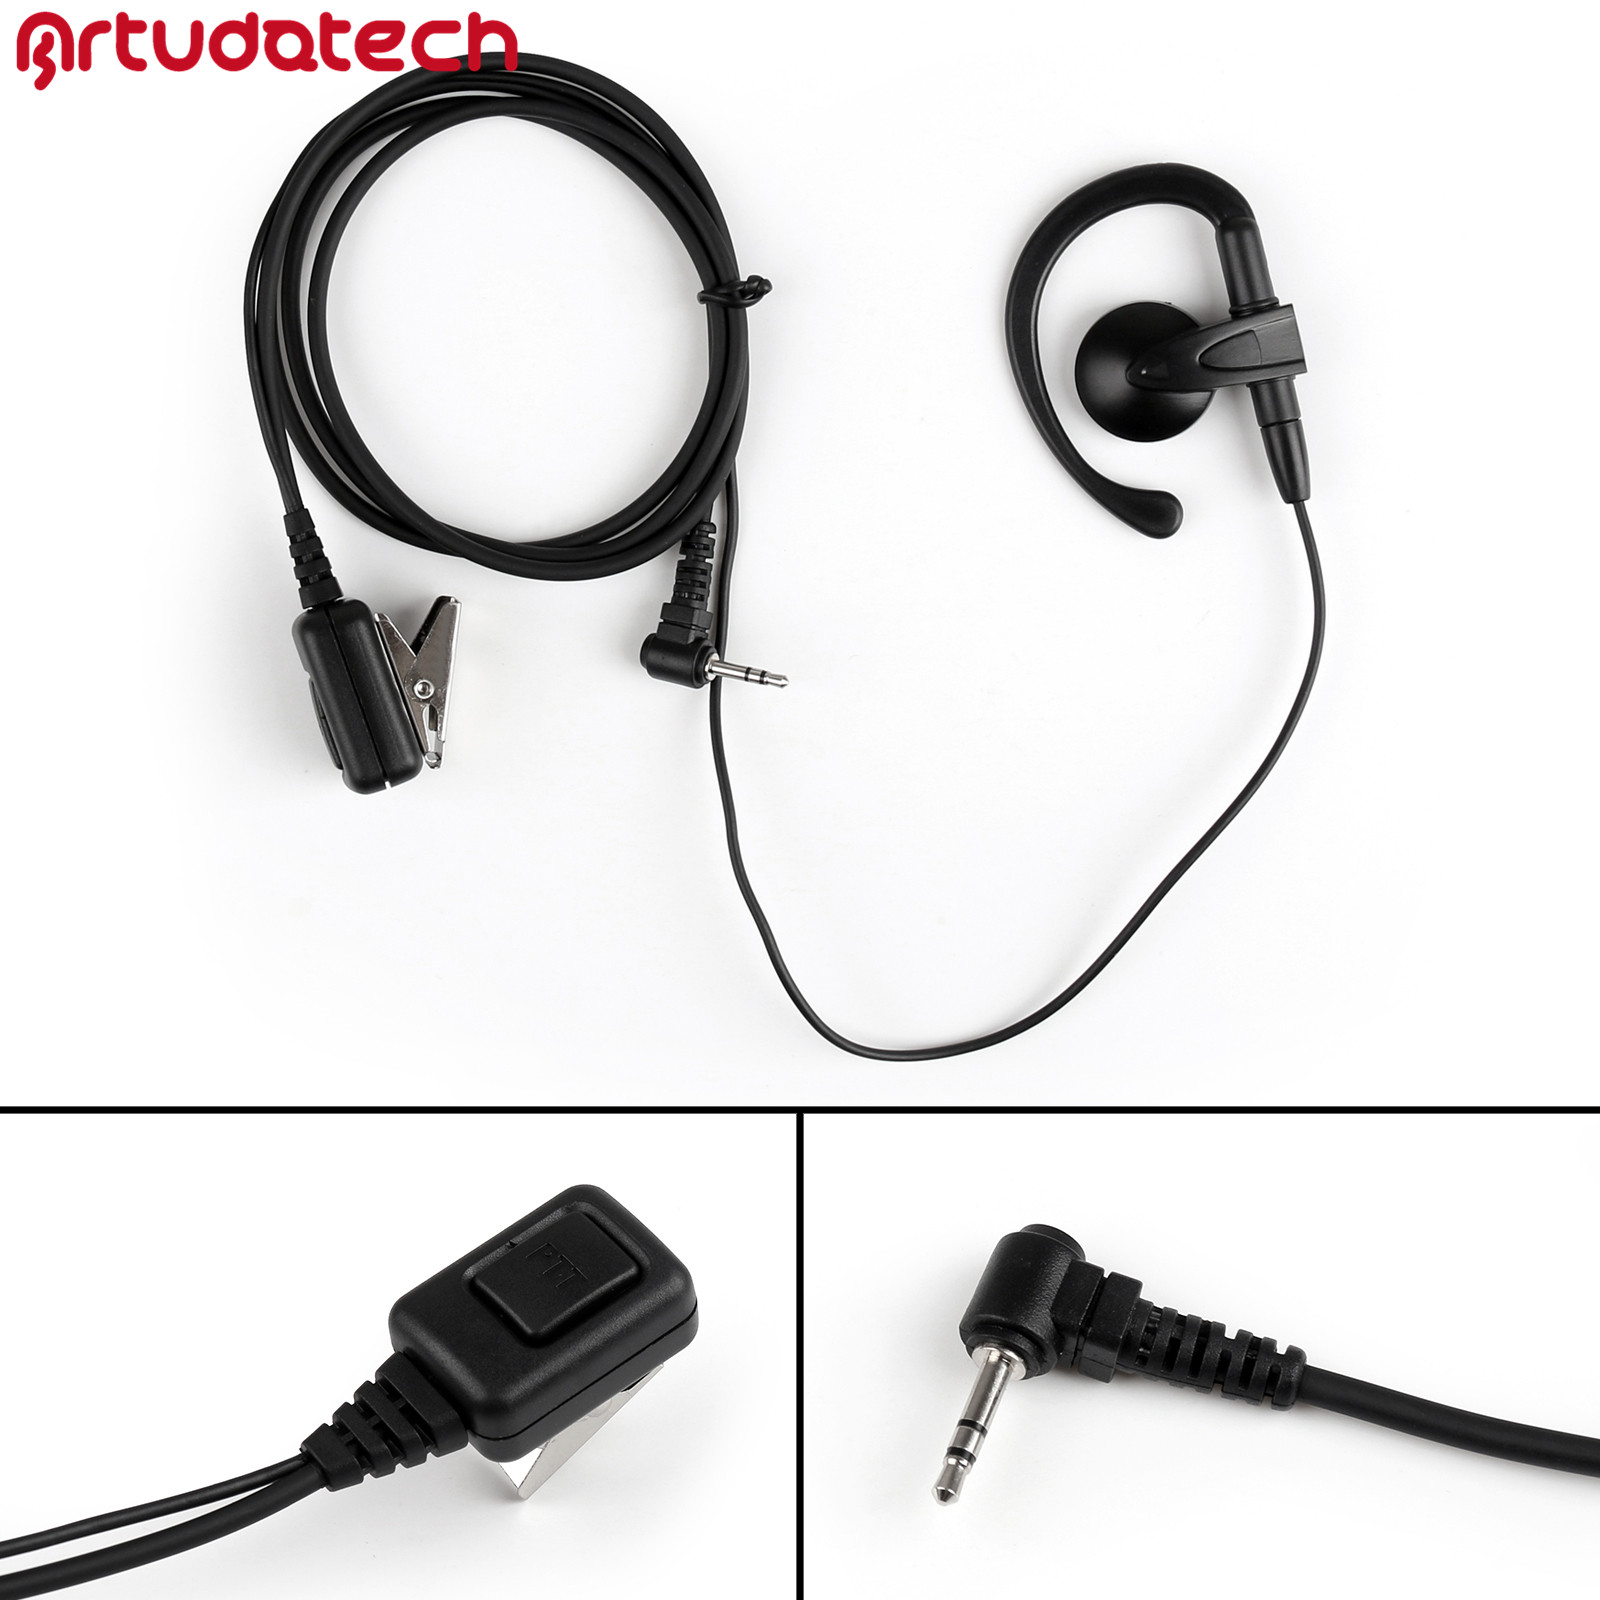 Artudatech 1Pcs 2.5mm Earhook Earpiece Headset PTT Mic For <font><b>Motorola</b></font> T6200 T6220 <font><b>T5422</b></font> Radio image